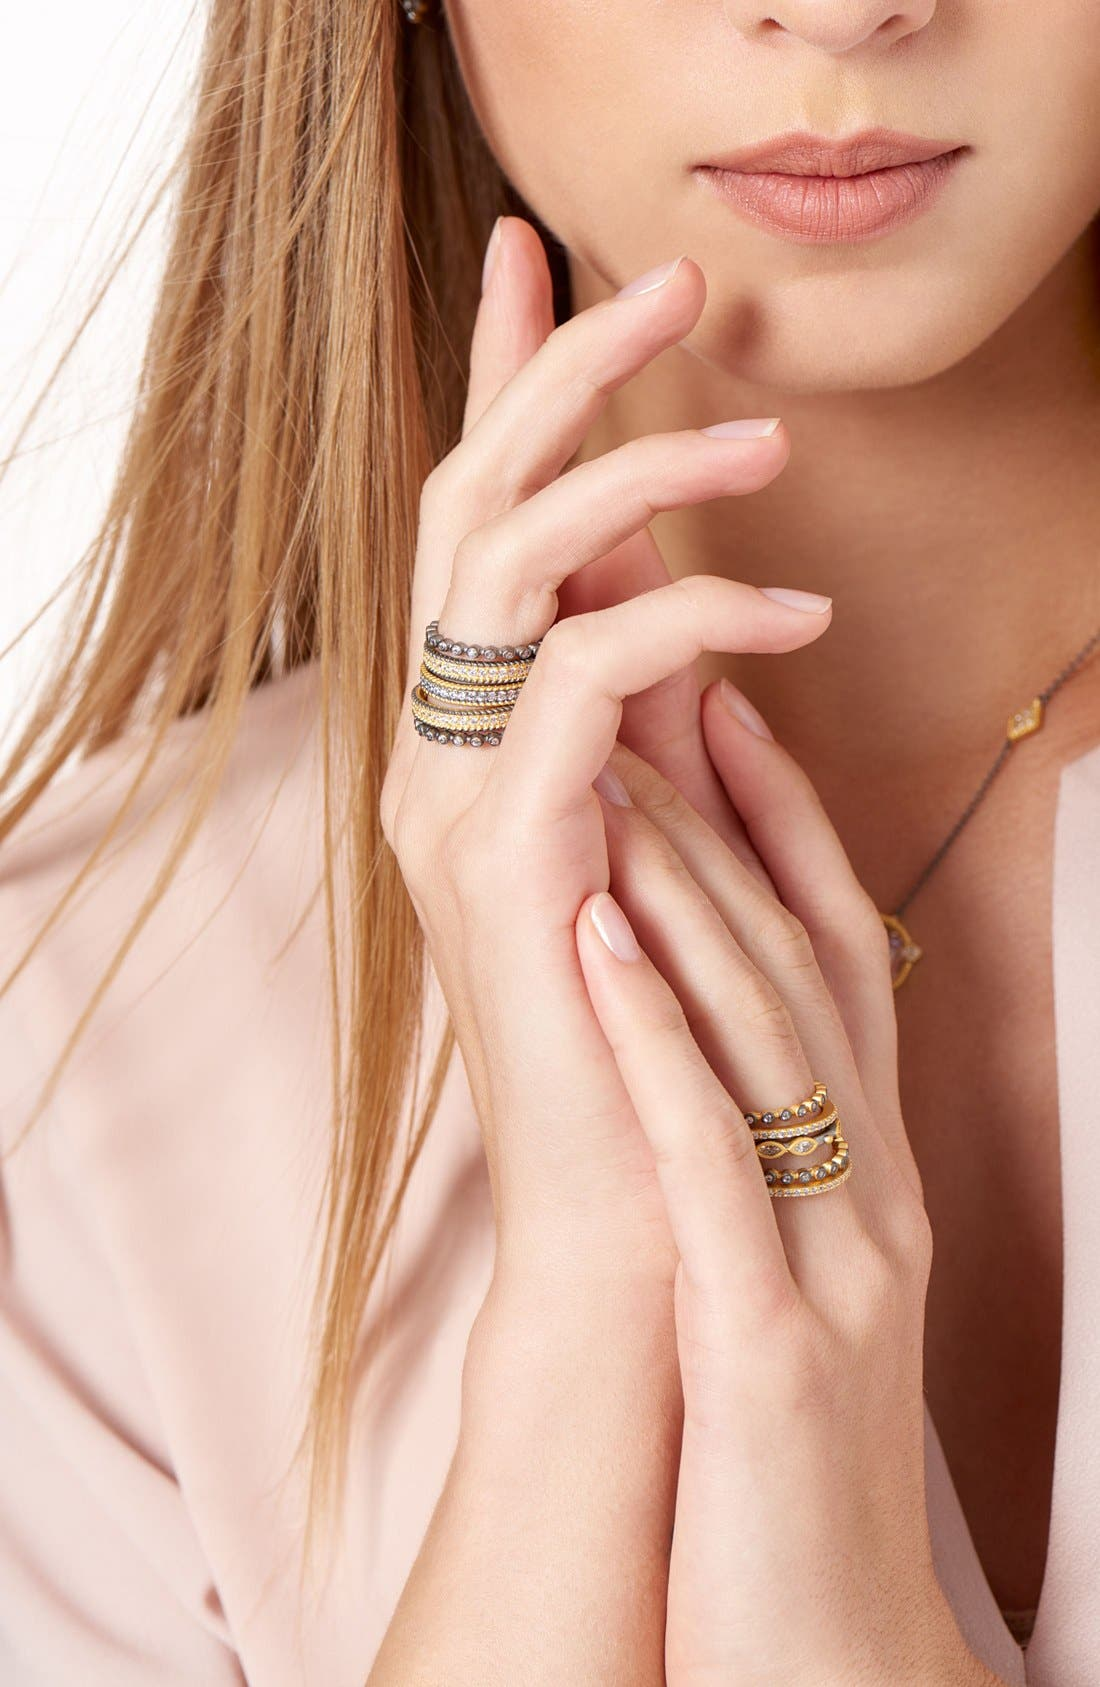 Delicate Stackable Rings,                             Alternate thumbnail 5, color,                             Gold/ Gunmetal/ Clear